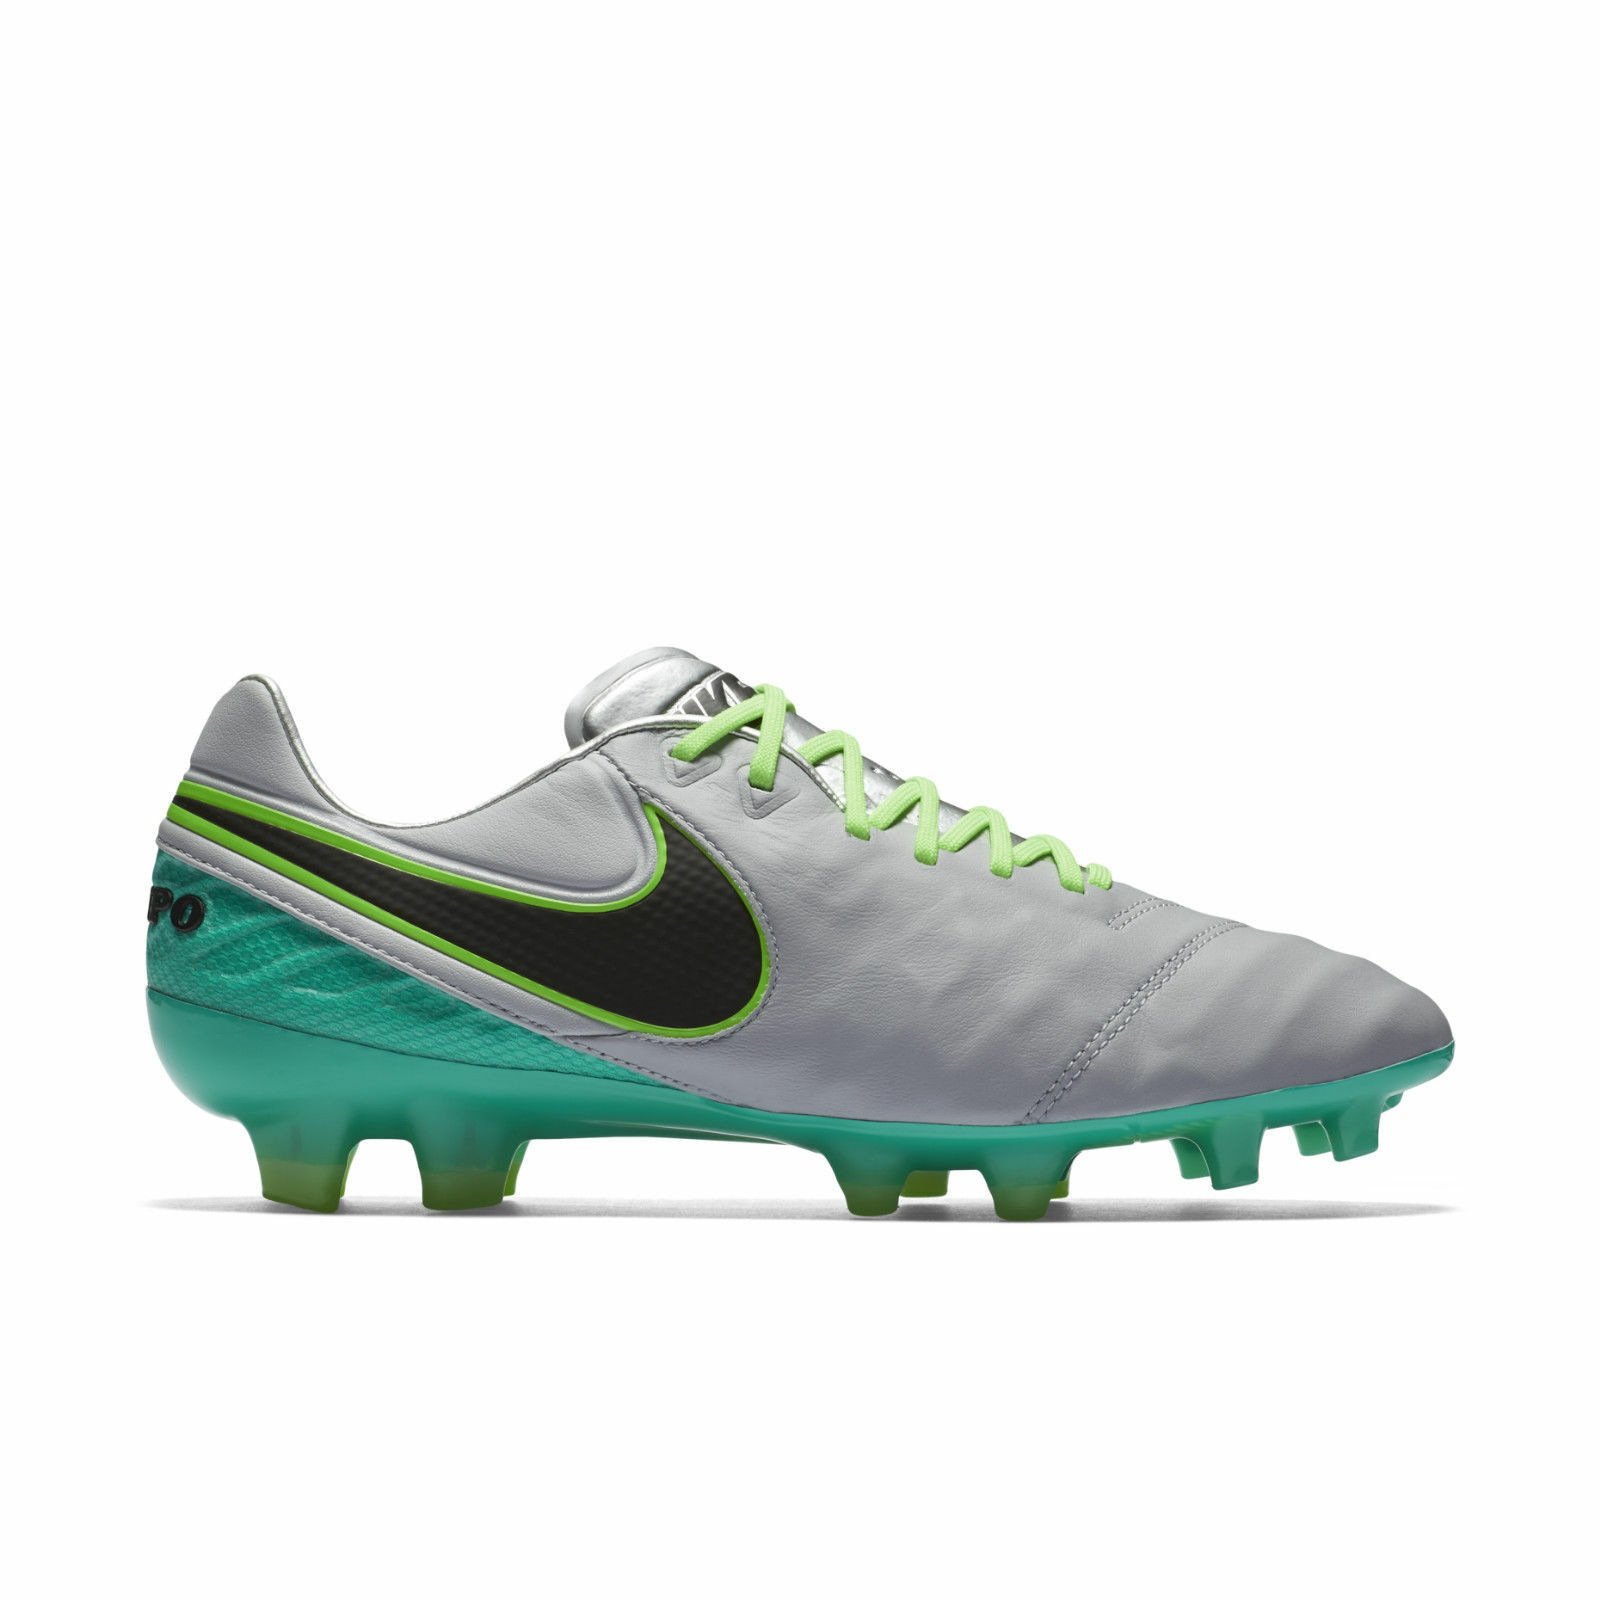 Soccer Boots for sale | Shop with